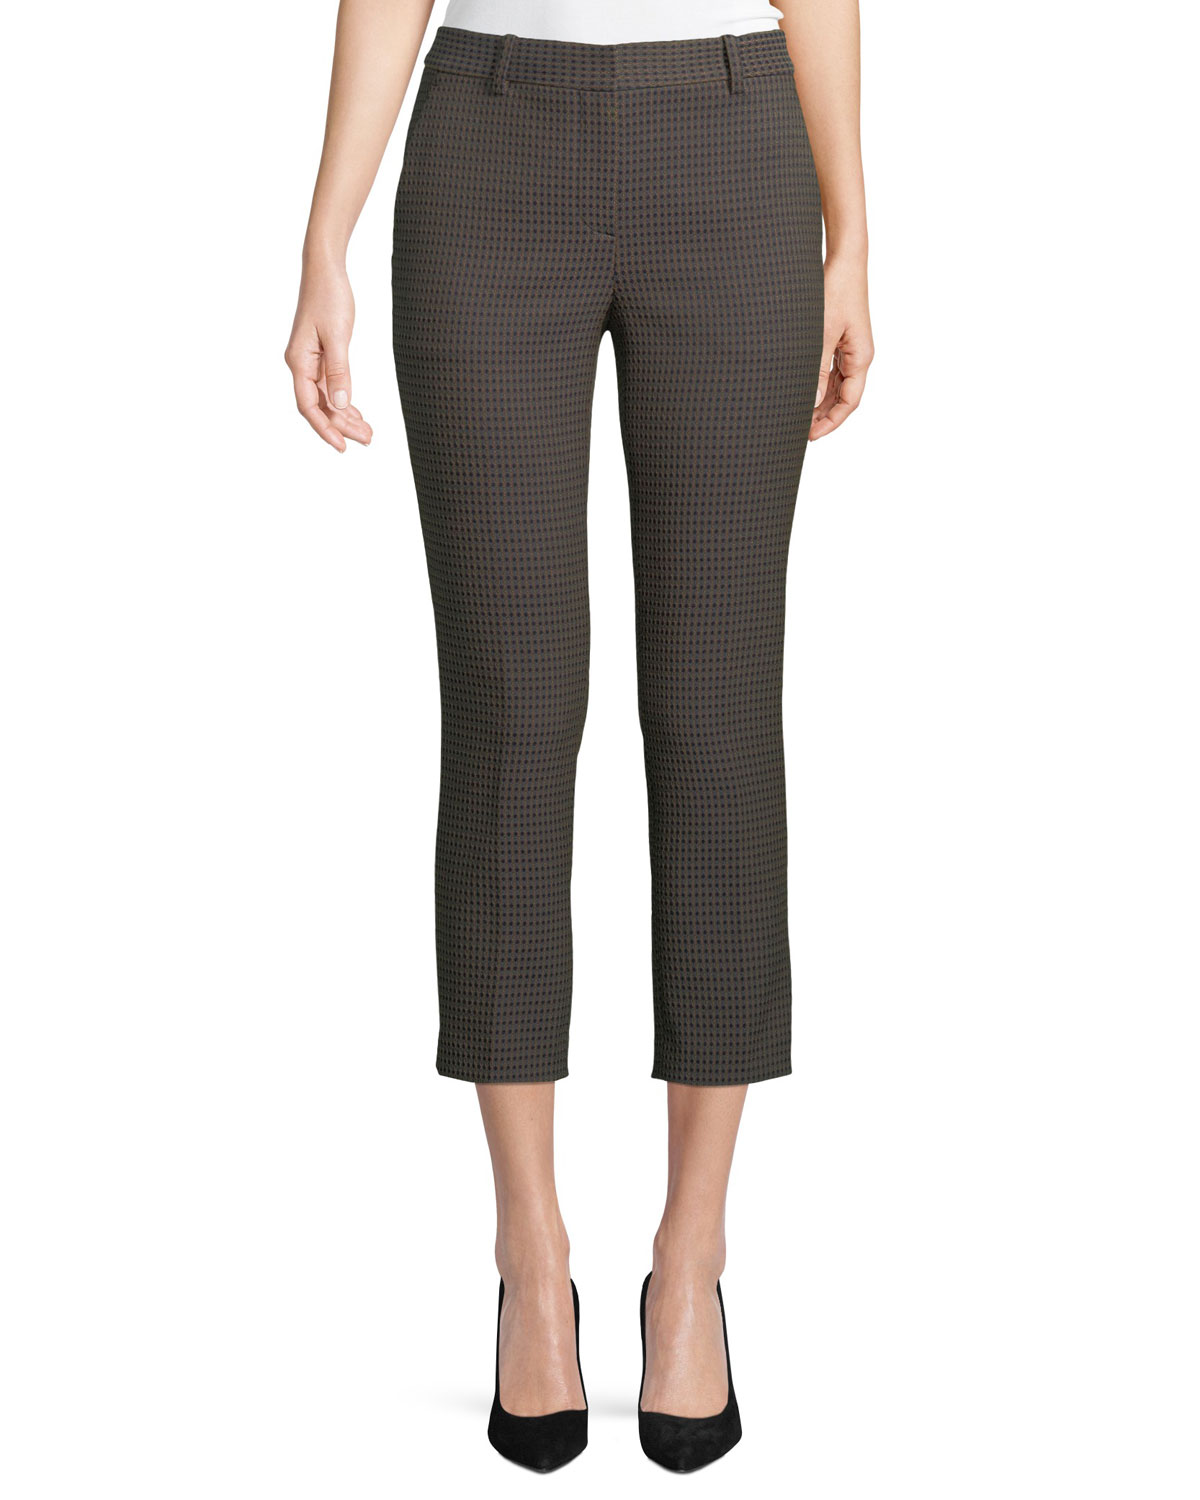 Trexxa 2 Dotted-Jacquard Straight-Leg Cropped Pants